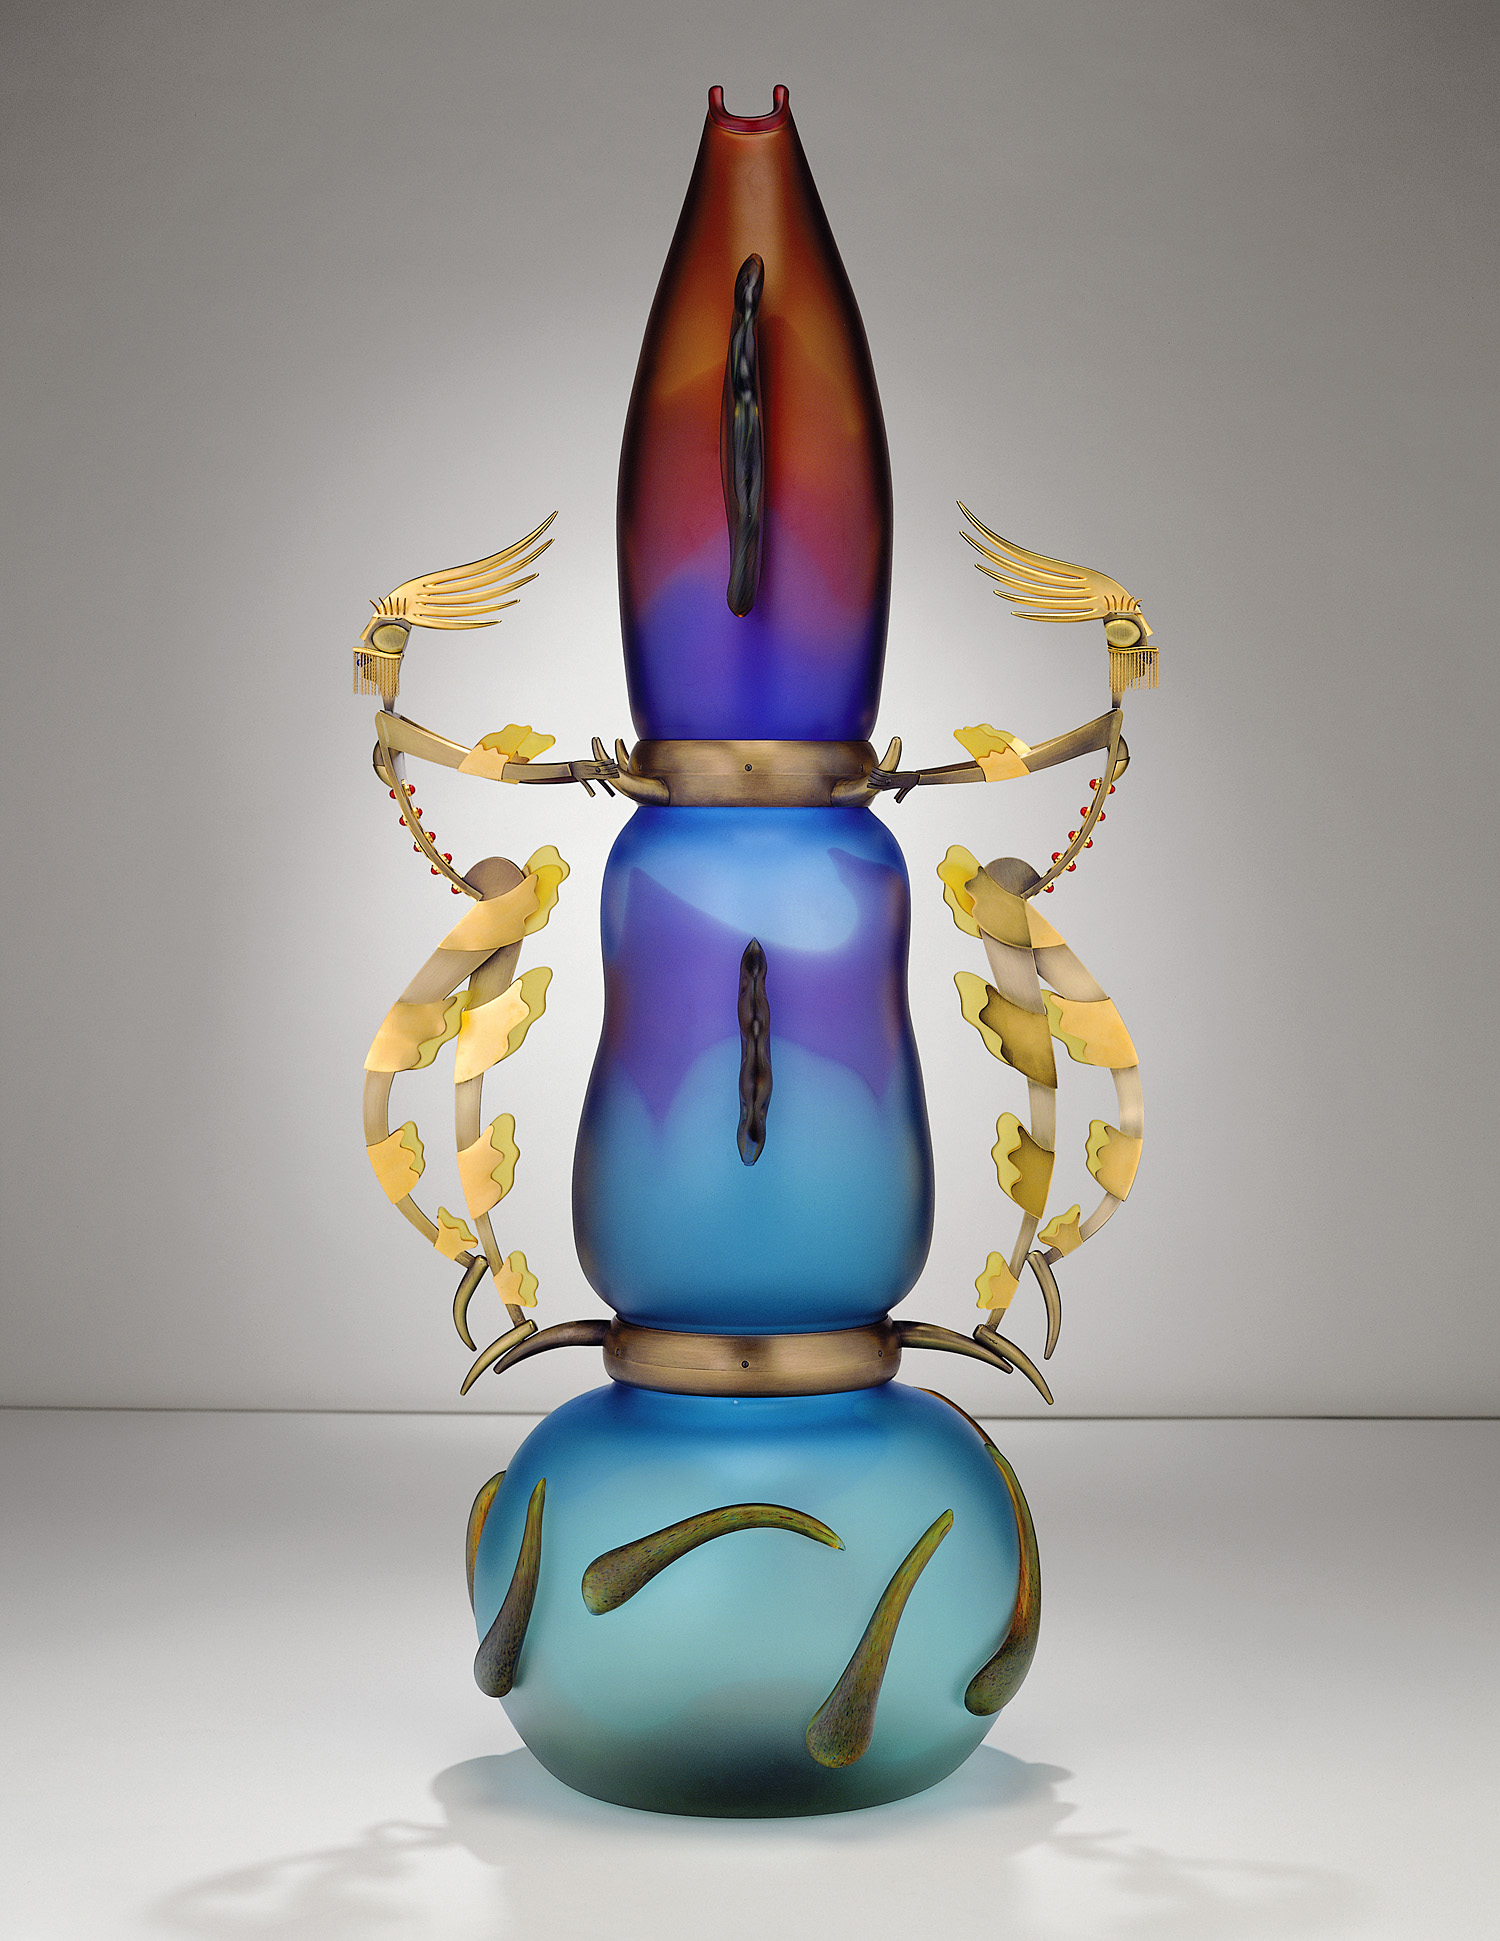 Masked Seducers   1999. Blown glass, bronze and gold-plated bronze, pate de verre. 58½ x 28 x 21""